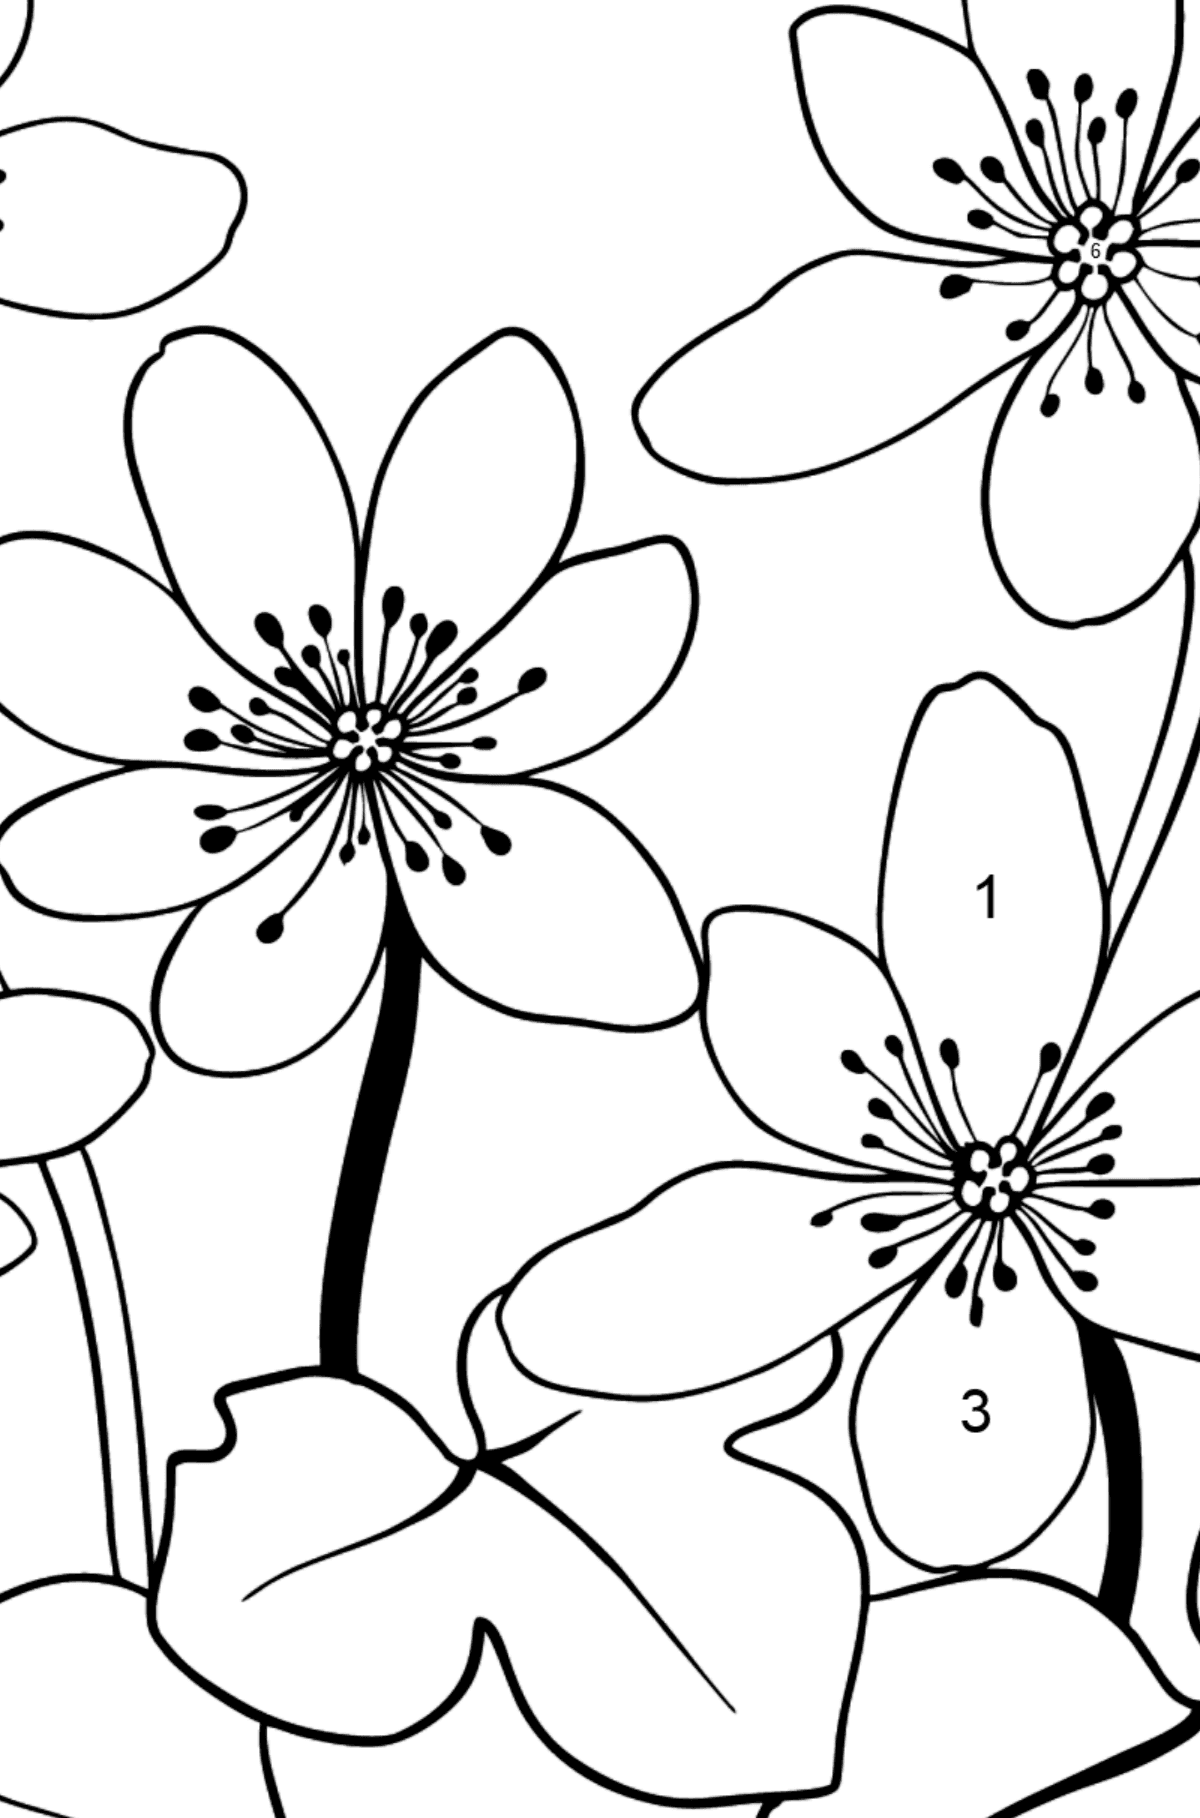 Flower Coloring Page - A Yellow and Orange Hepatica - Coloring by Numbers for Kids